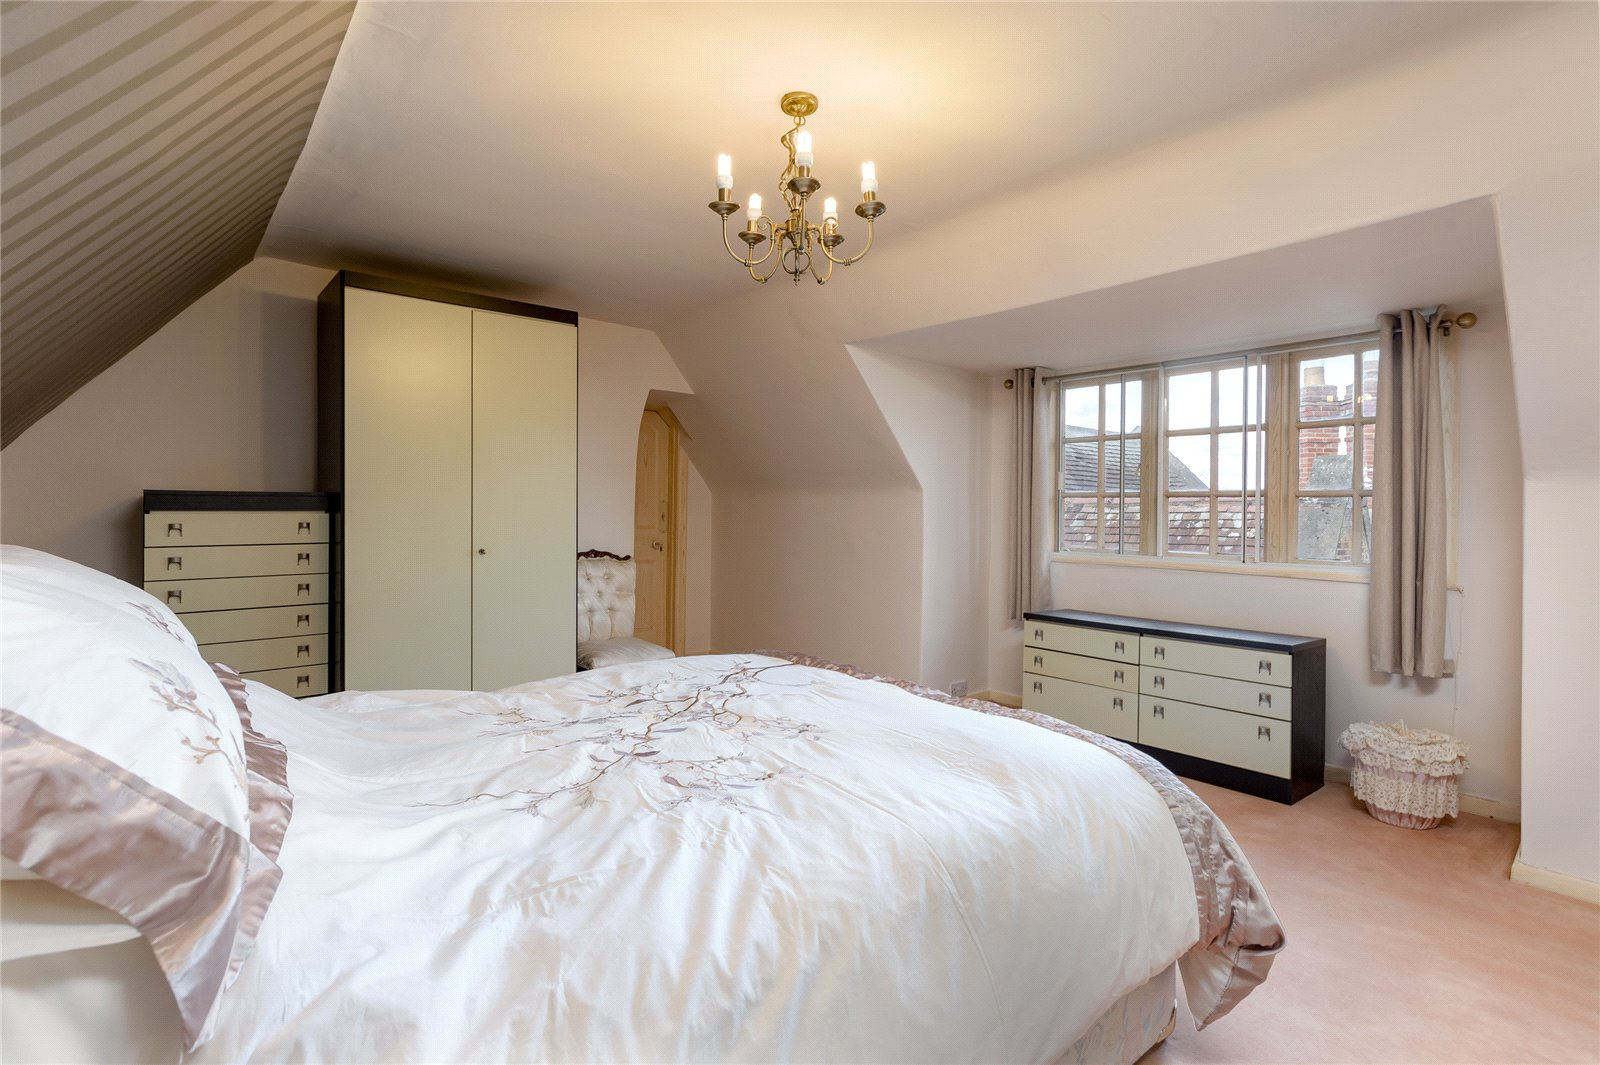 9 bed house for sale in Church Lane, Ormesby  - Property Image 27